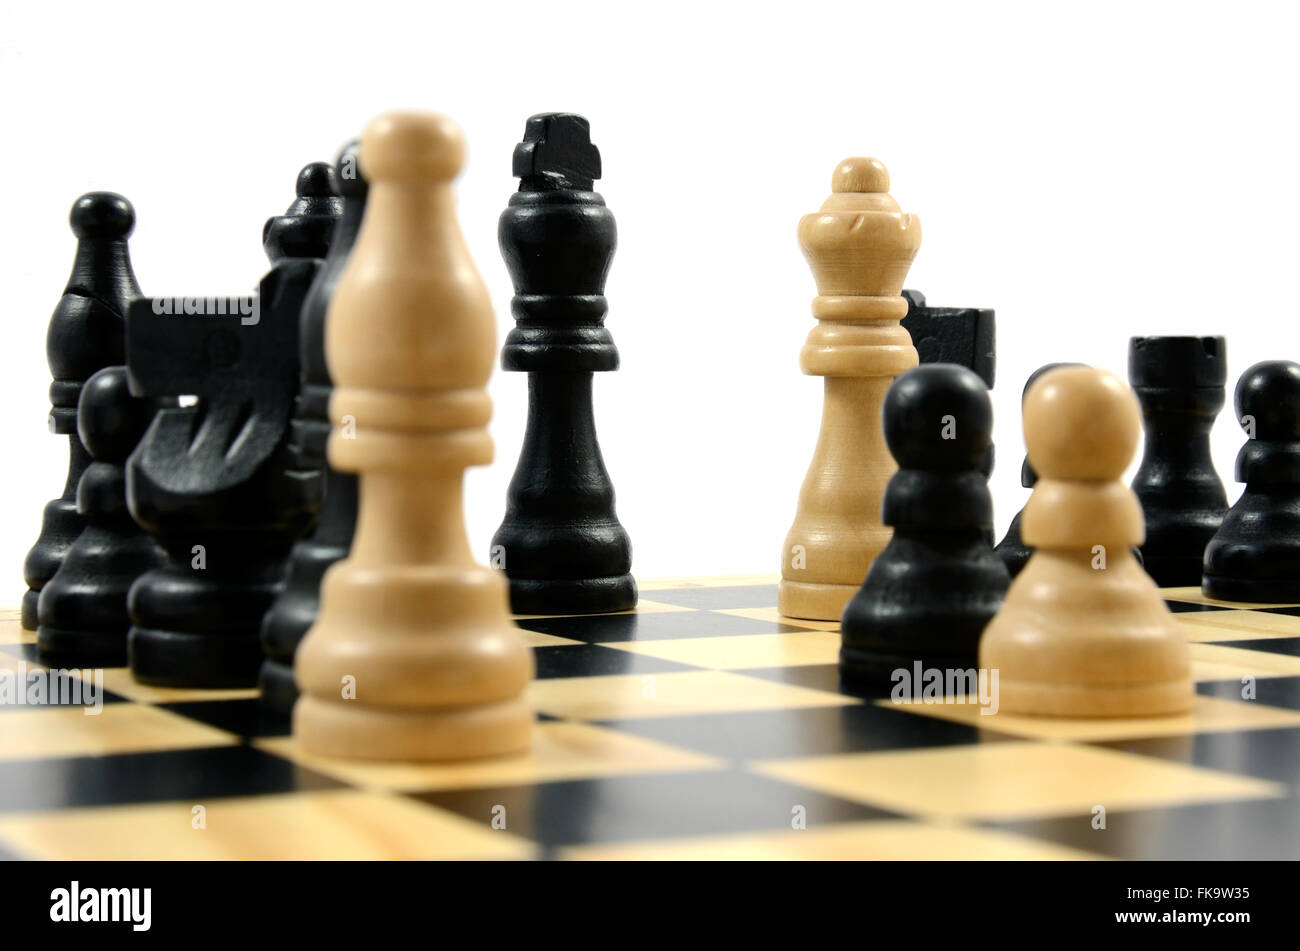 A close up of a games of chess. Black has been checkmated. - Stock Image